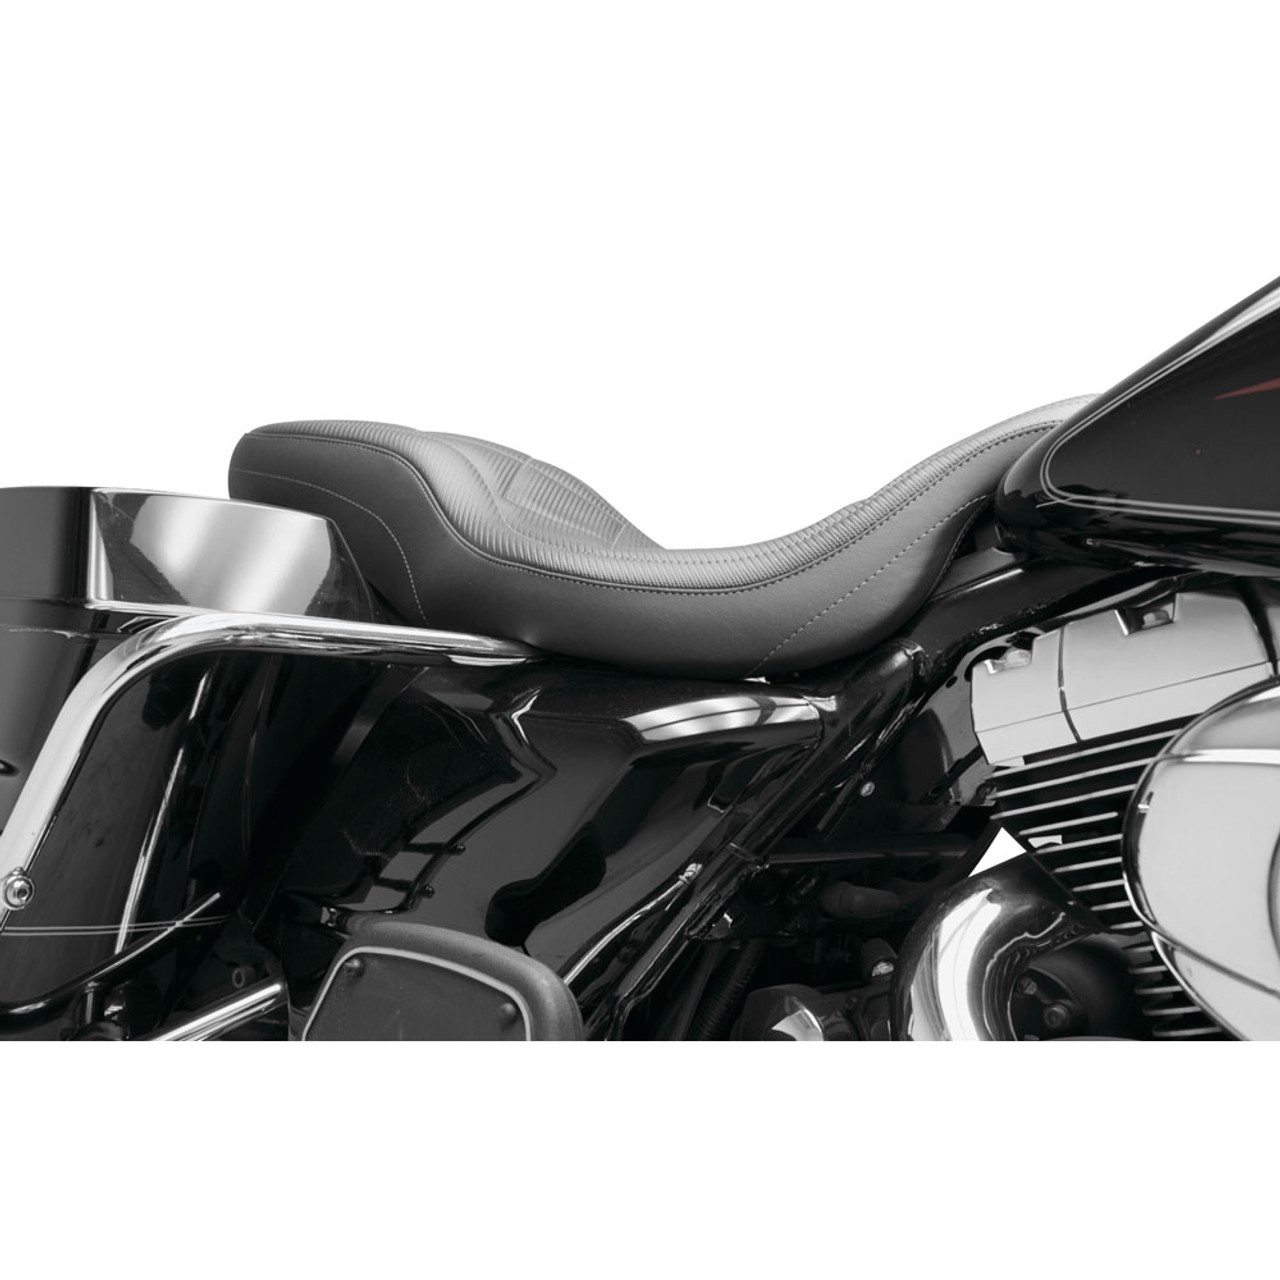 2008-2018 Harley Davidson FLH Electra Glide New Mustang Super Tripper Carbon Seat